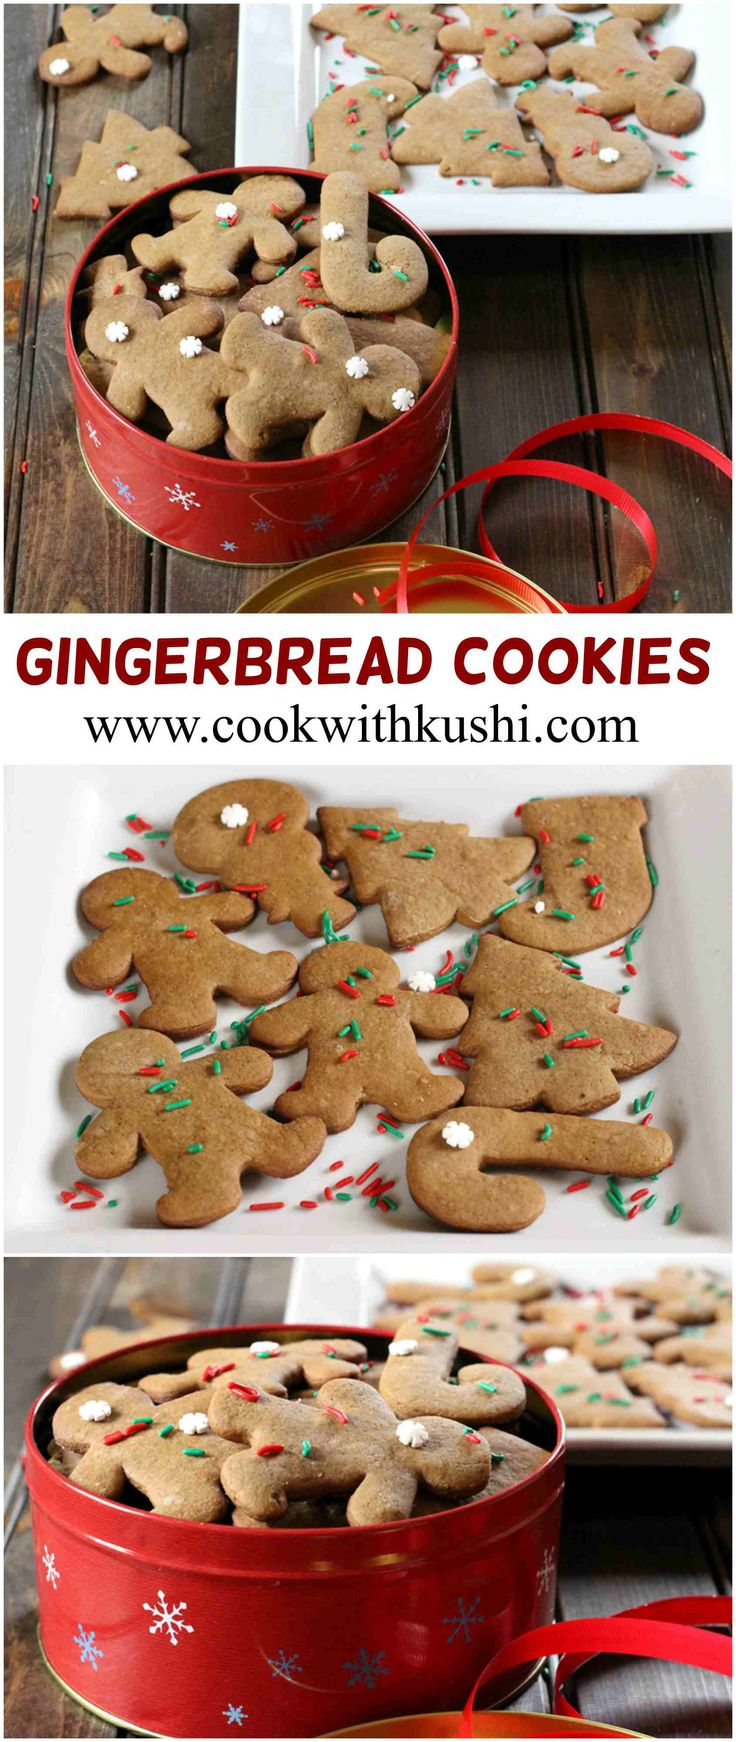 Gingerbread Cookies are very delicious and irresistible cookies ...